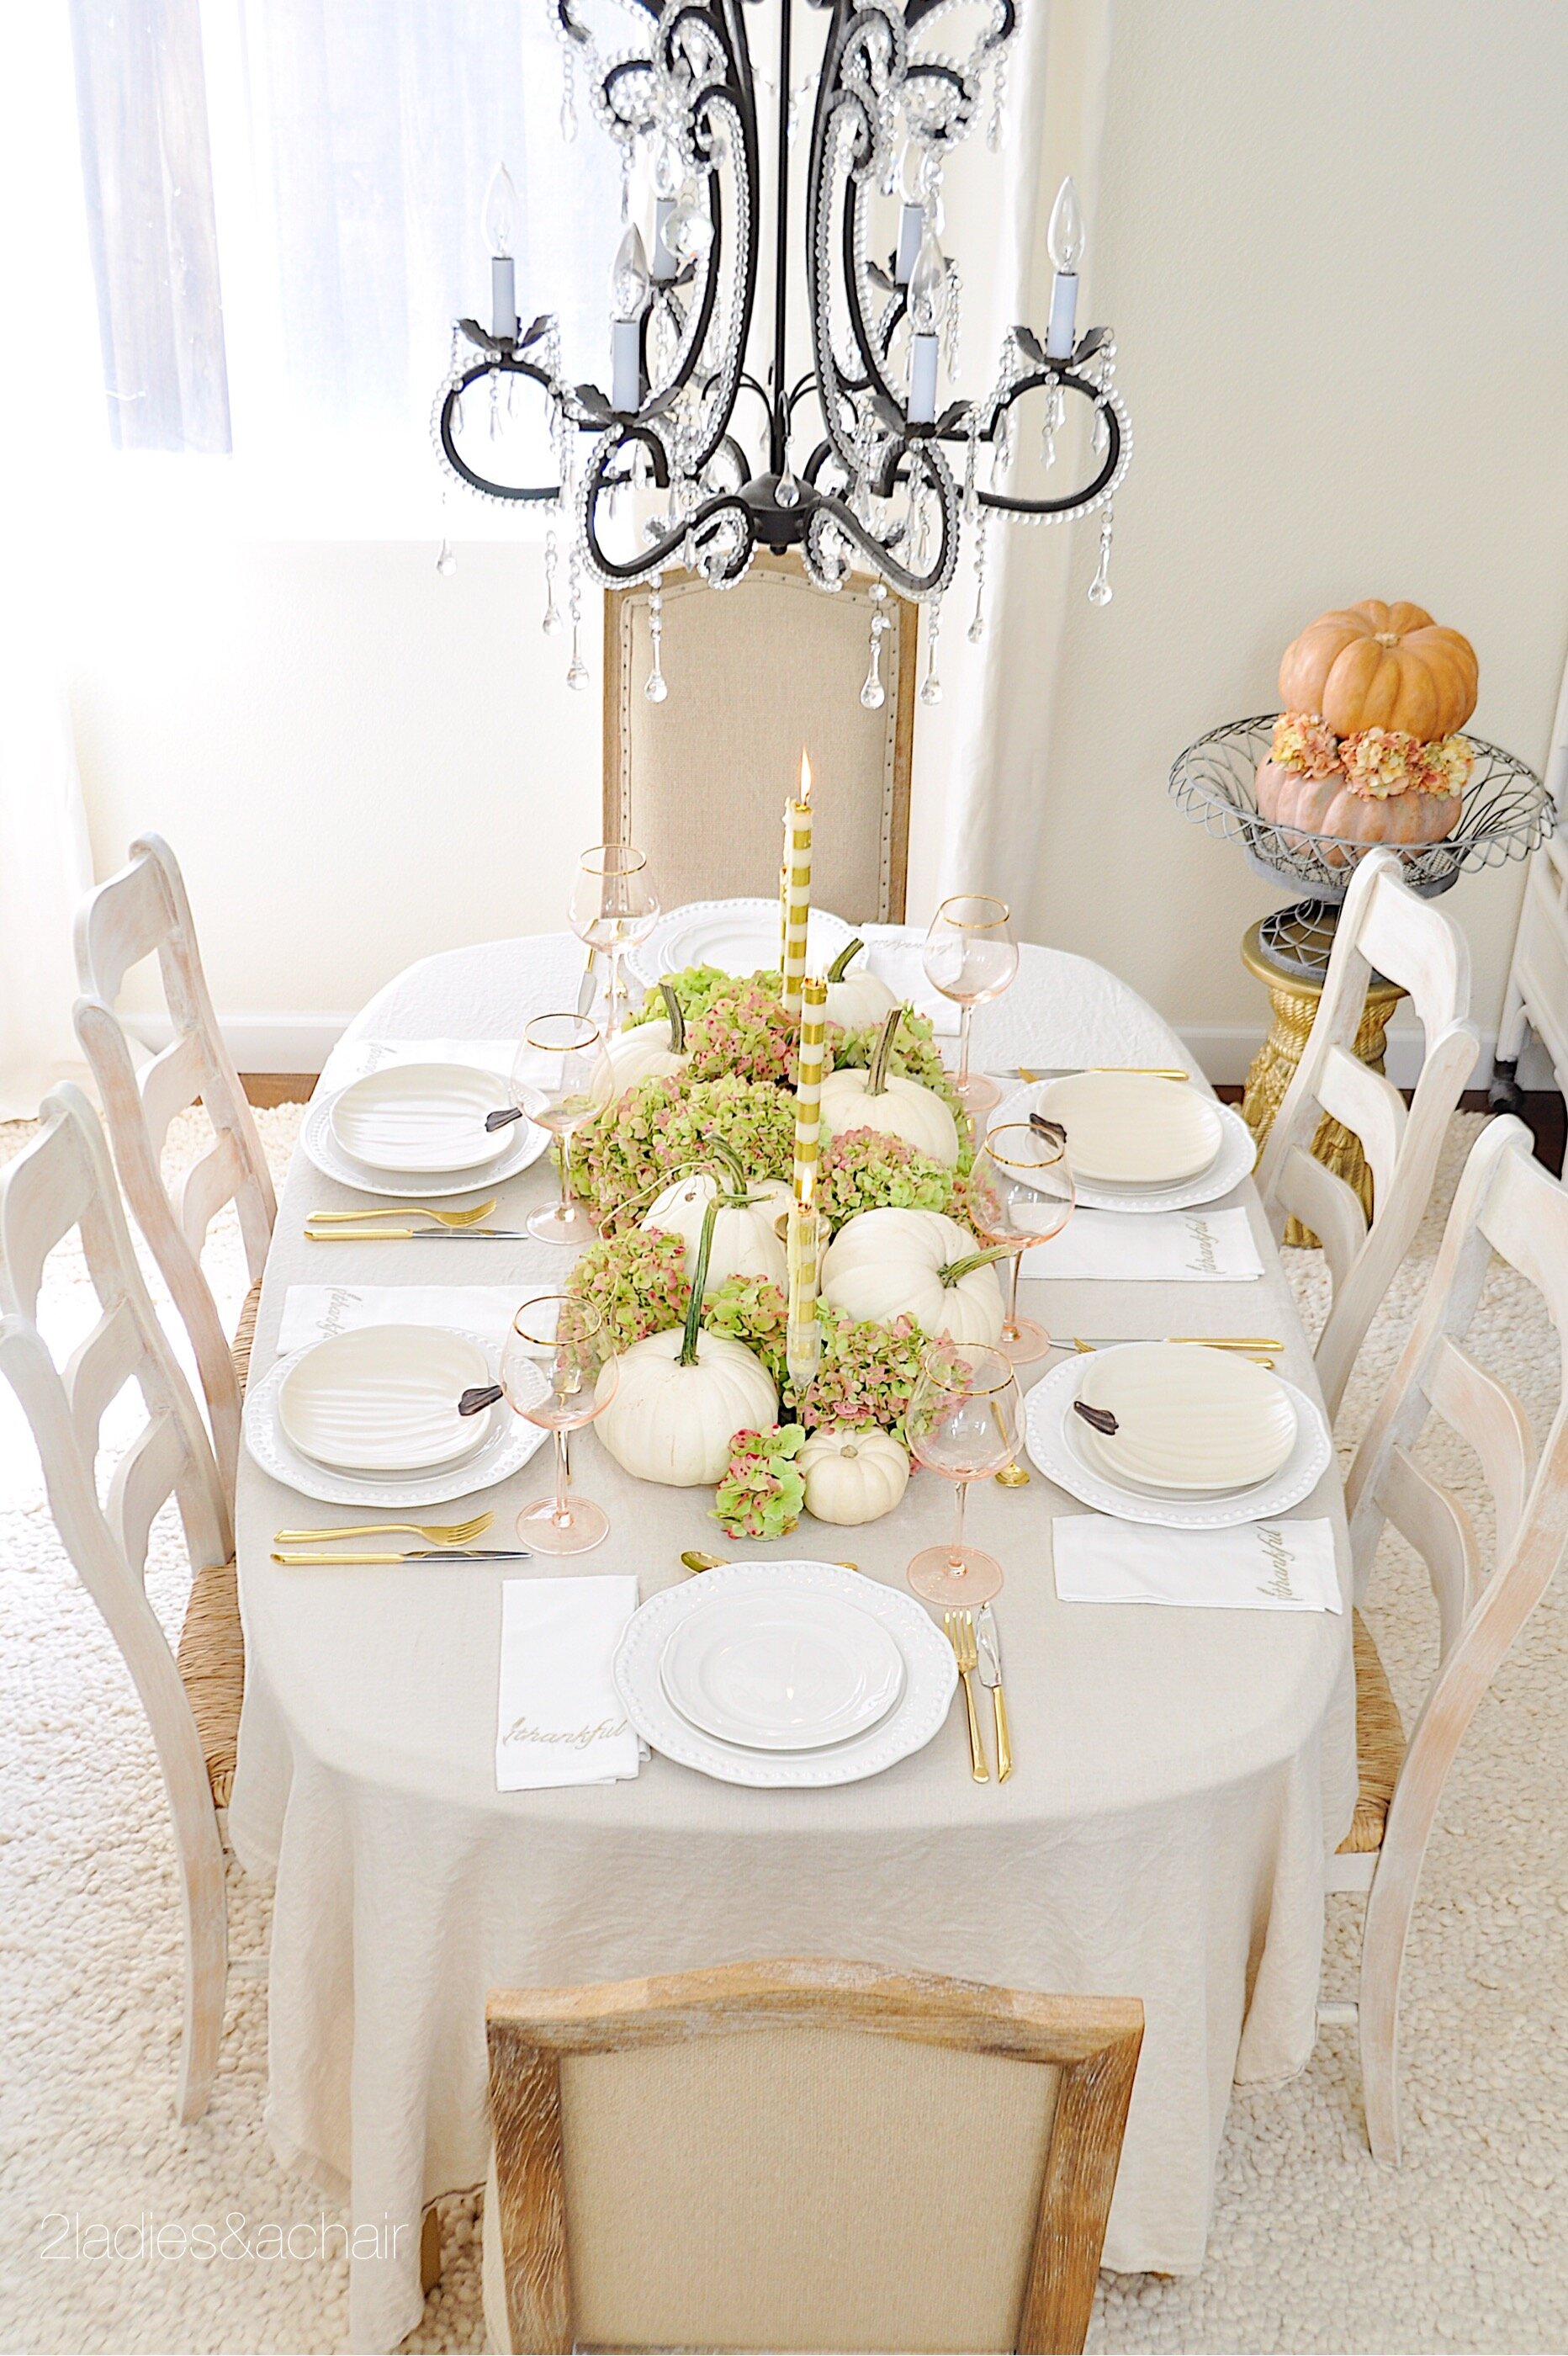 thanksgiving table IMG_1490.JPG